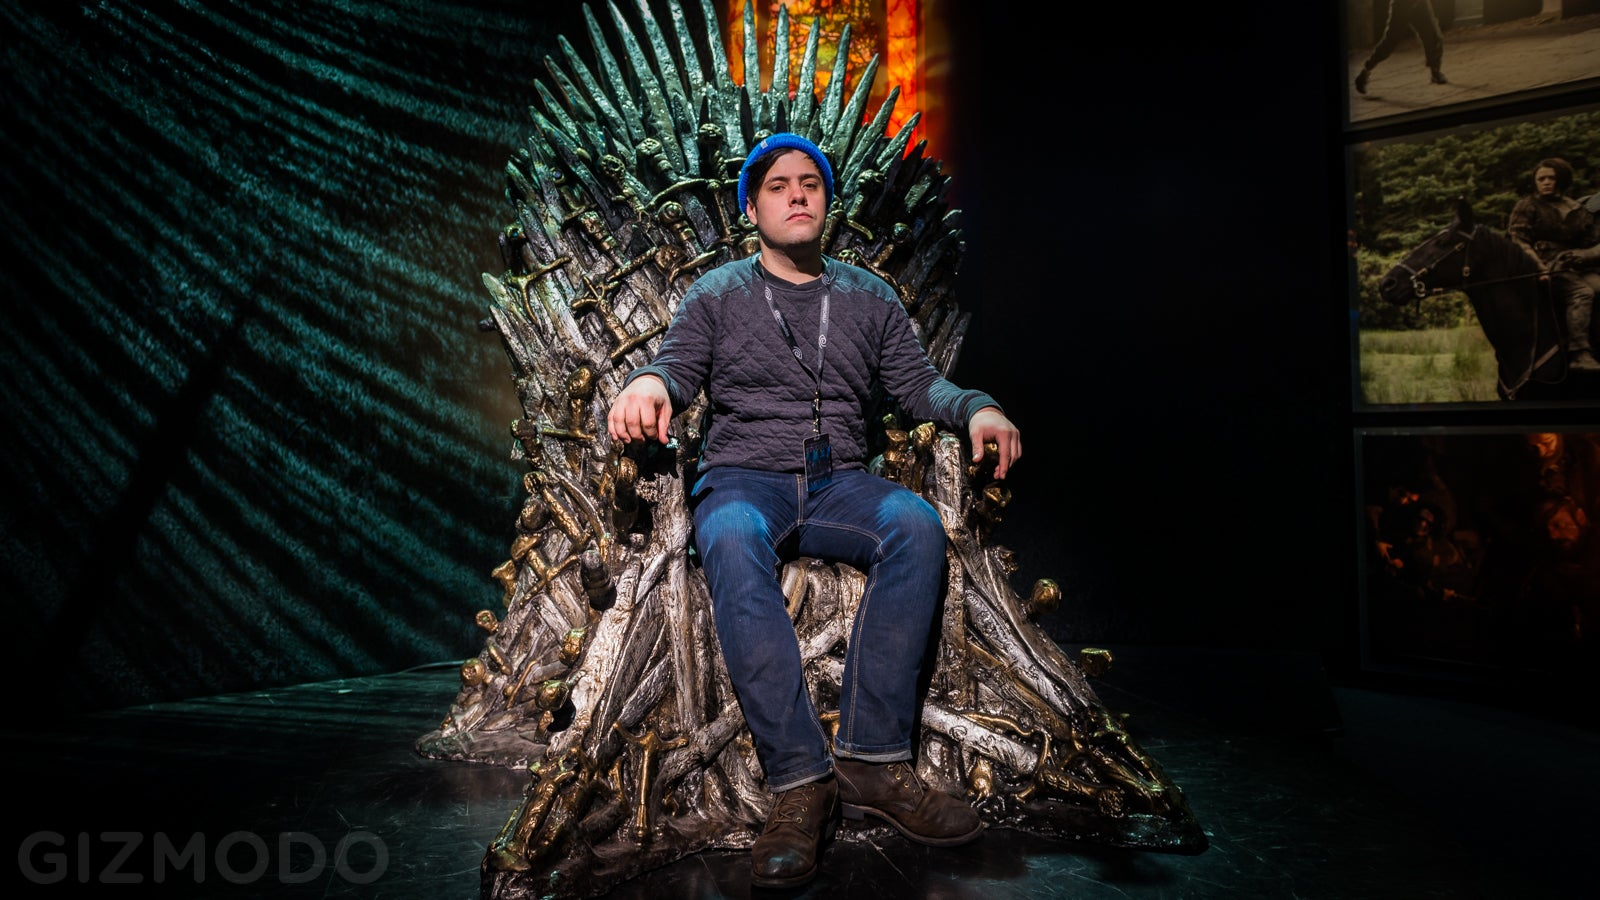 The Oculus Rift Put Me In Game of Thrones and It Made My Stomach Drop